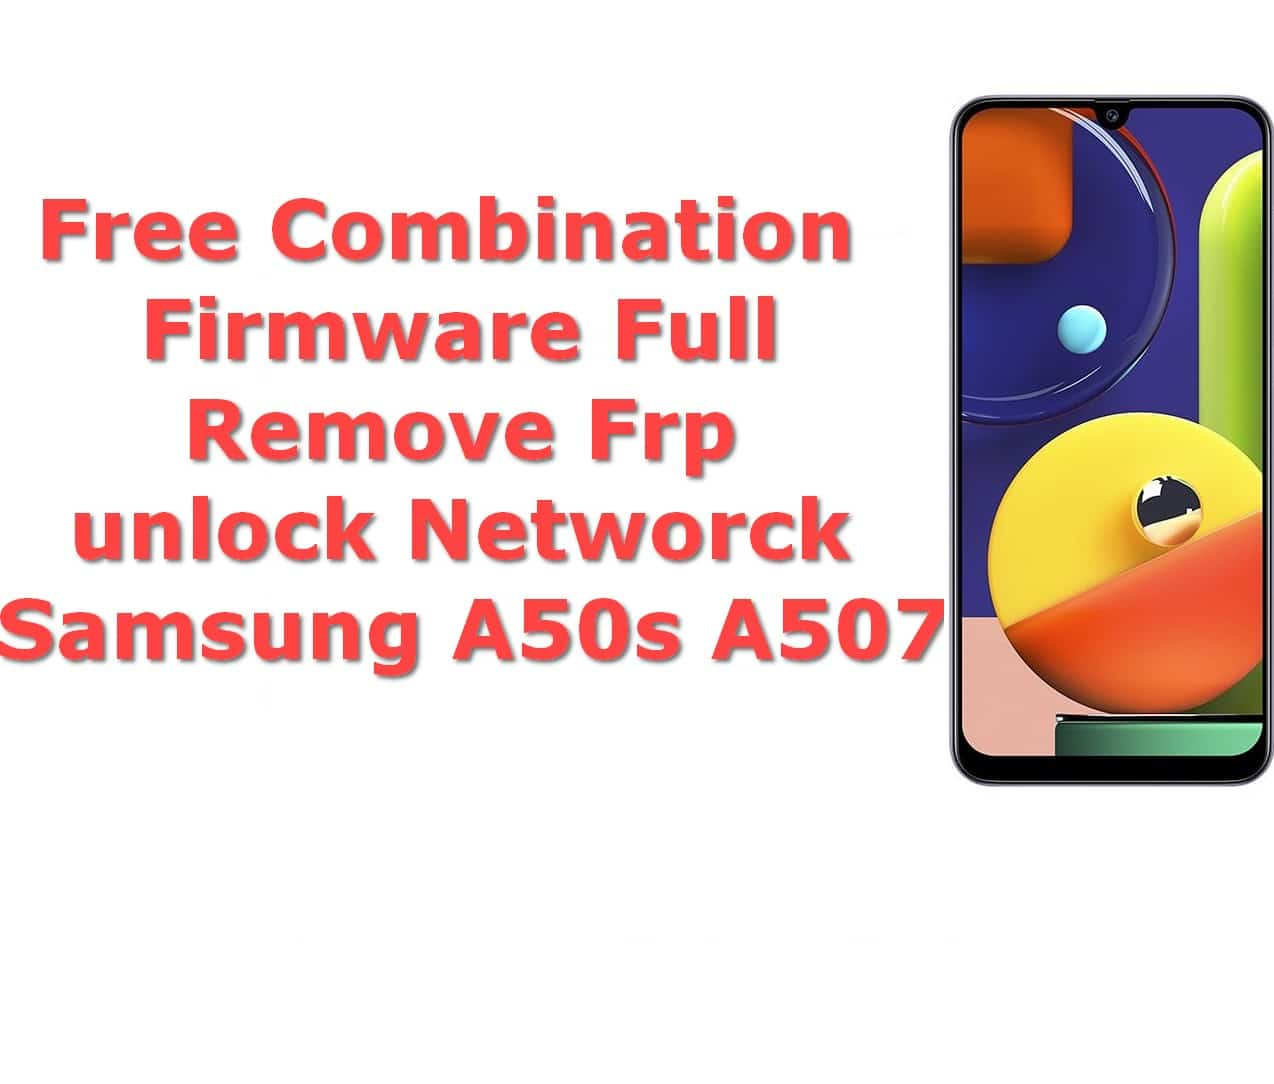 Free Rom Combination Frp Firmware Samsung Galaxy A50s A507